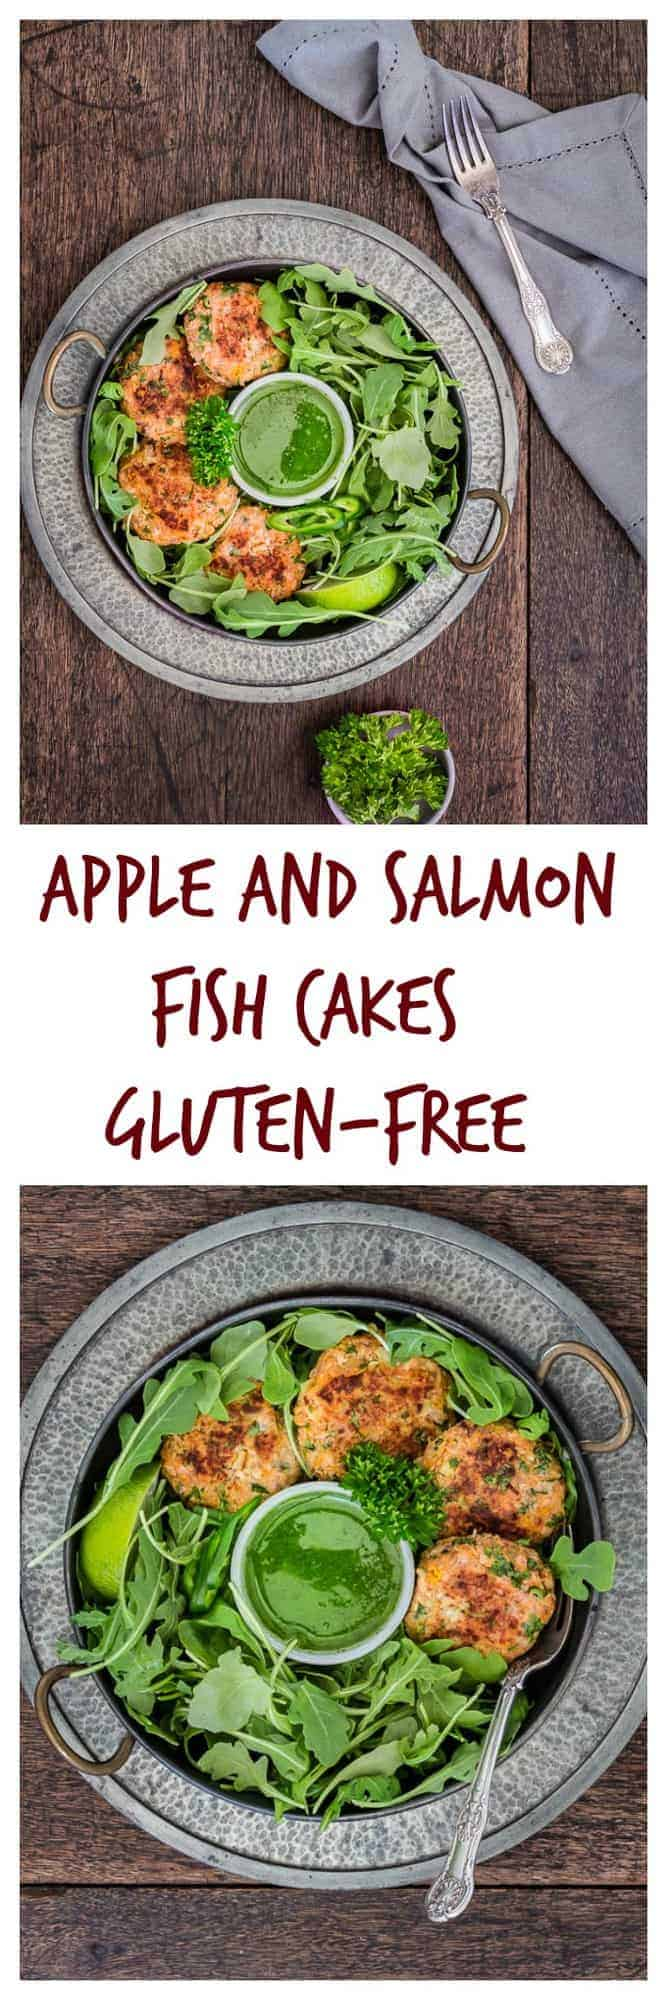 Apple and Salmon Fish Cakes {Gluten-free}   Recipes From A Pantry